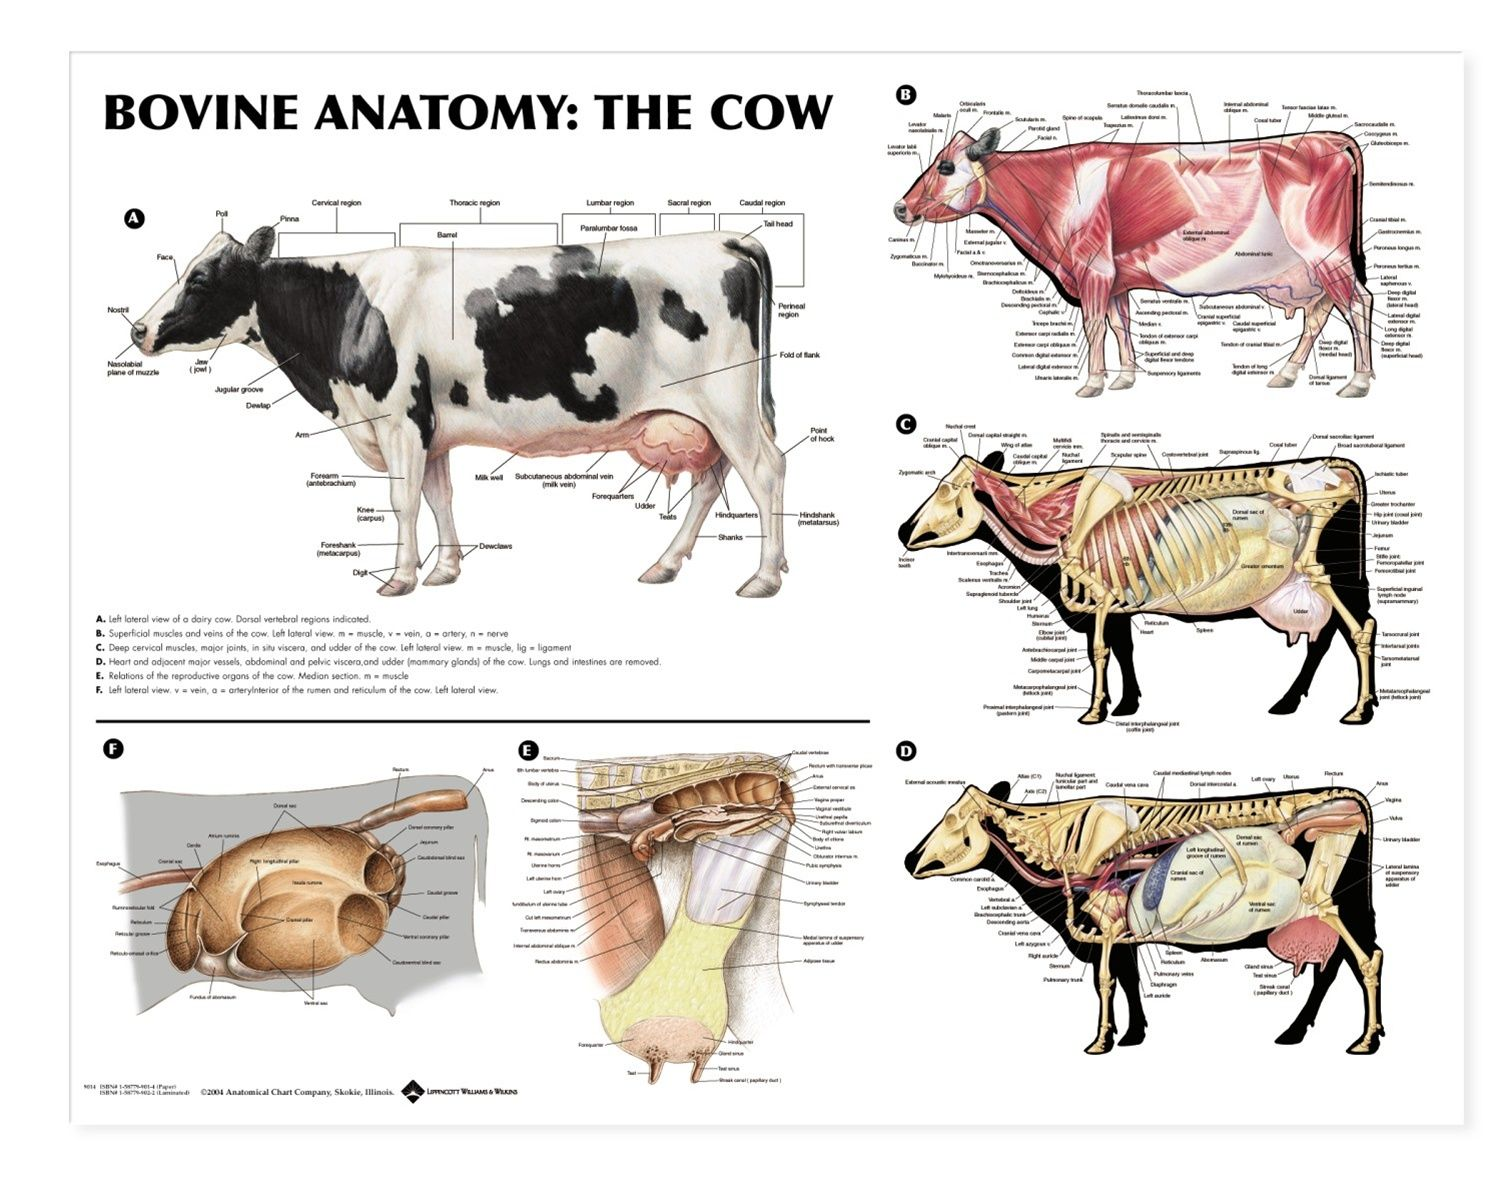 bb816ee4b13d9b90ab1bda8d09f07dcc cow anatomy diagram vet stuff pinterest cow, cattle and animals